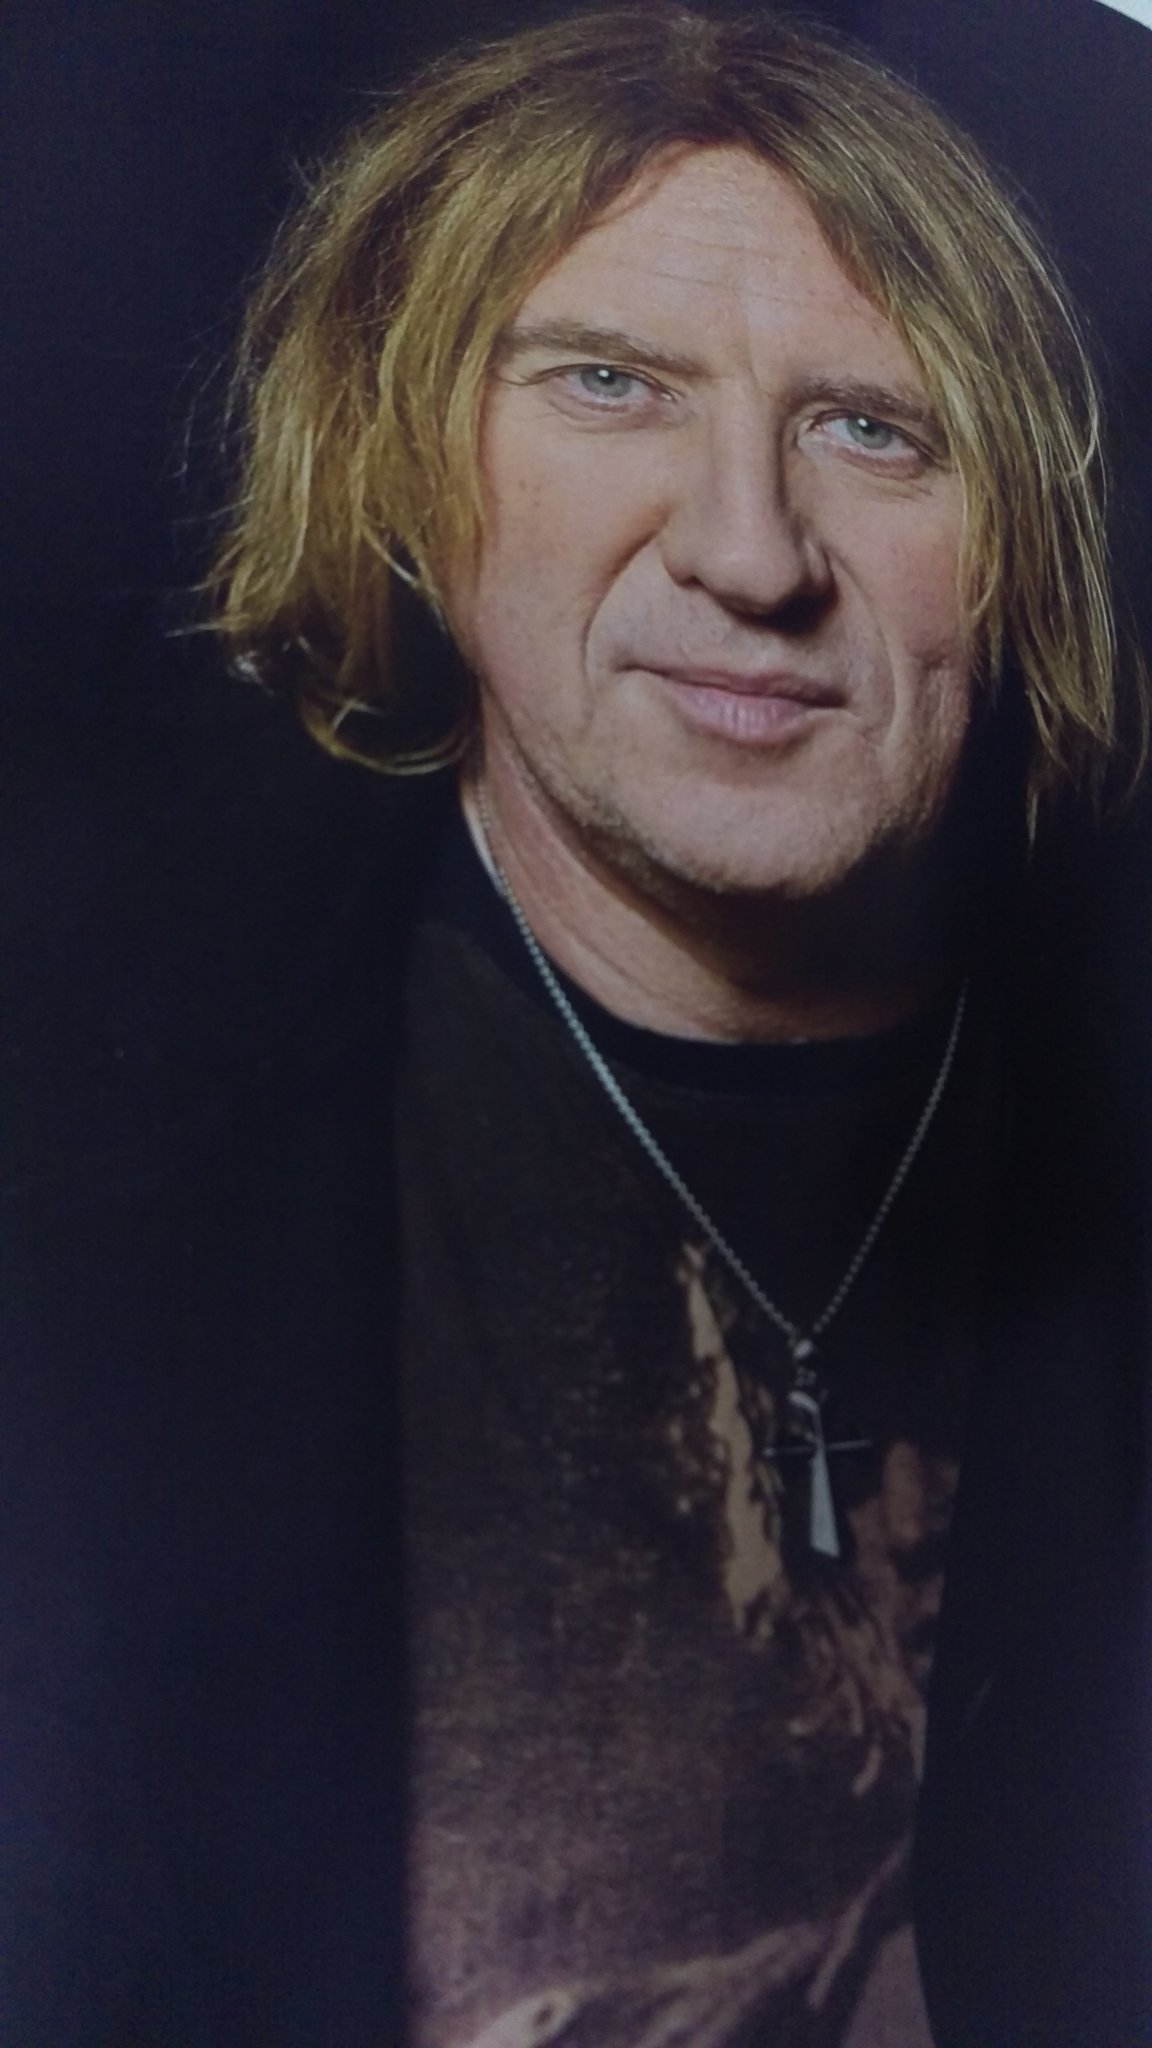 Happy birthday Joe Elliott